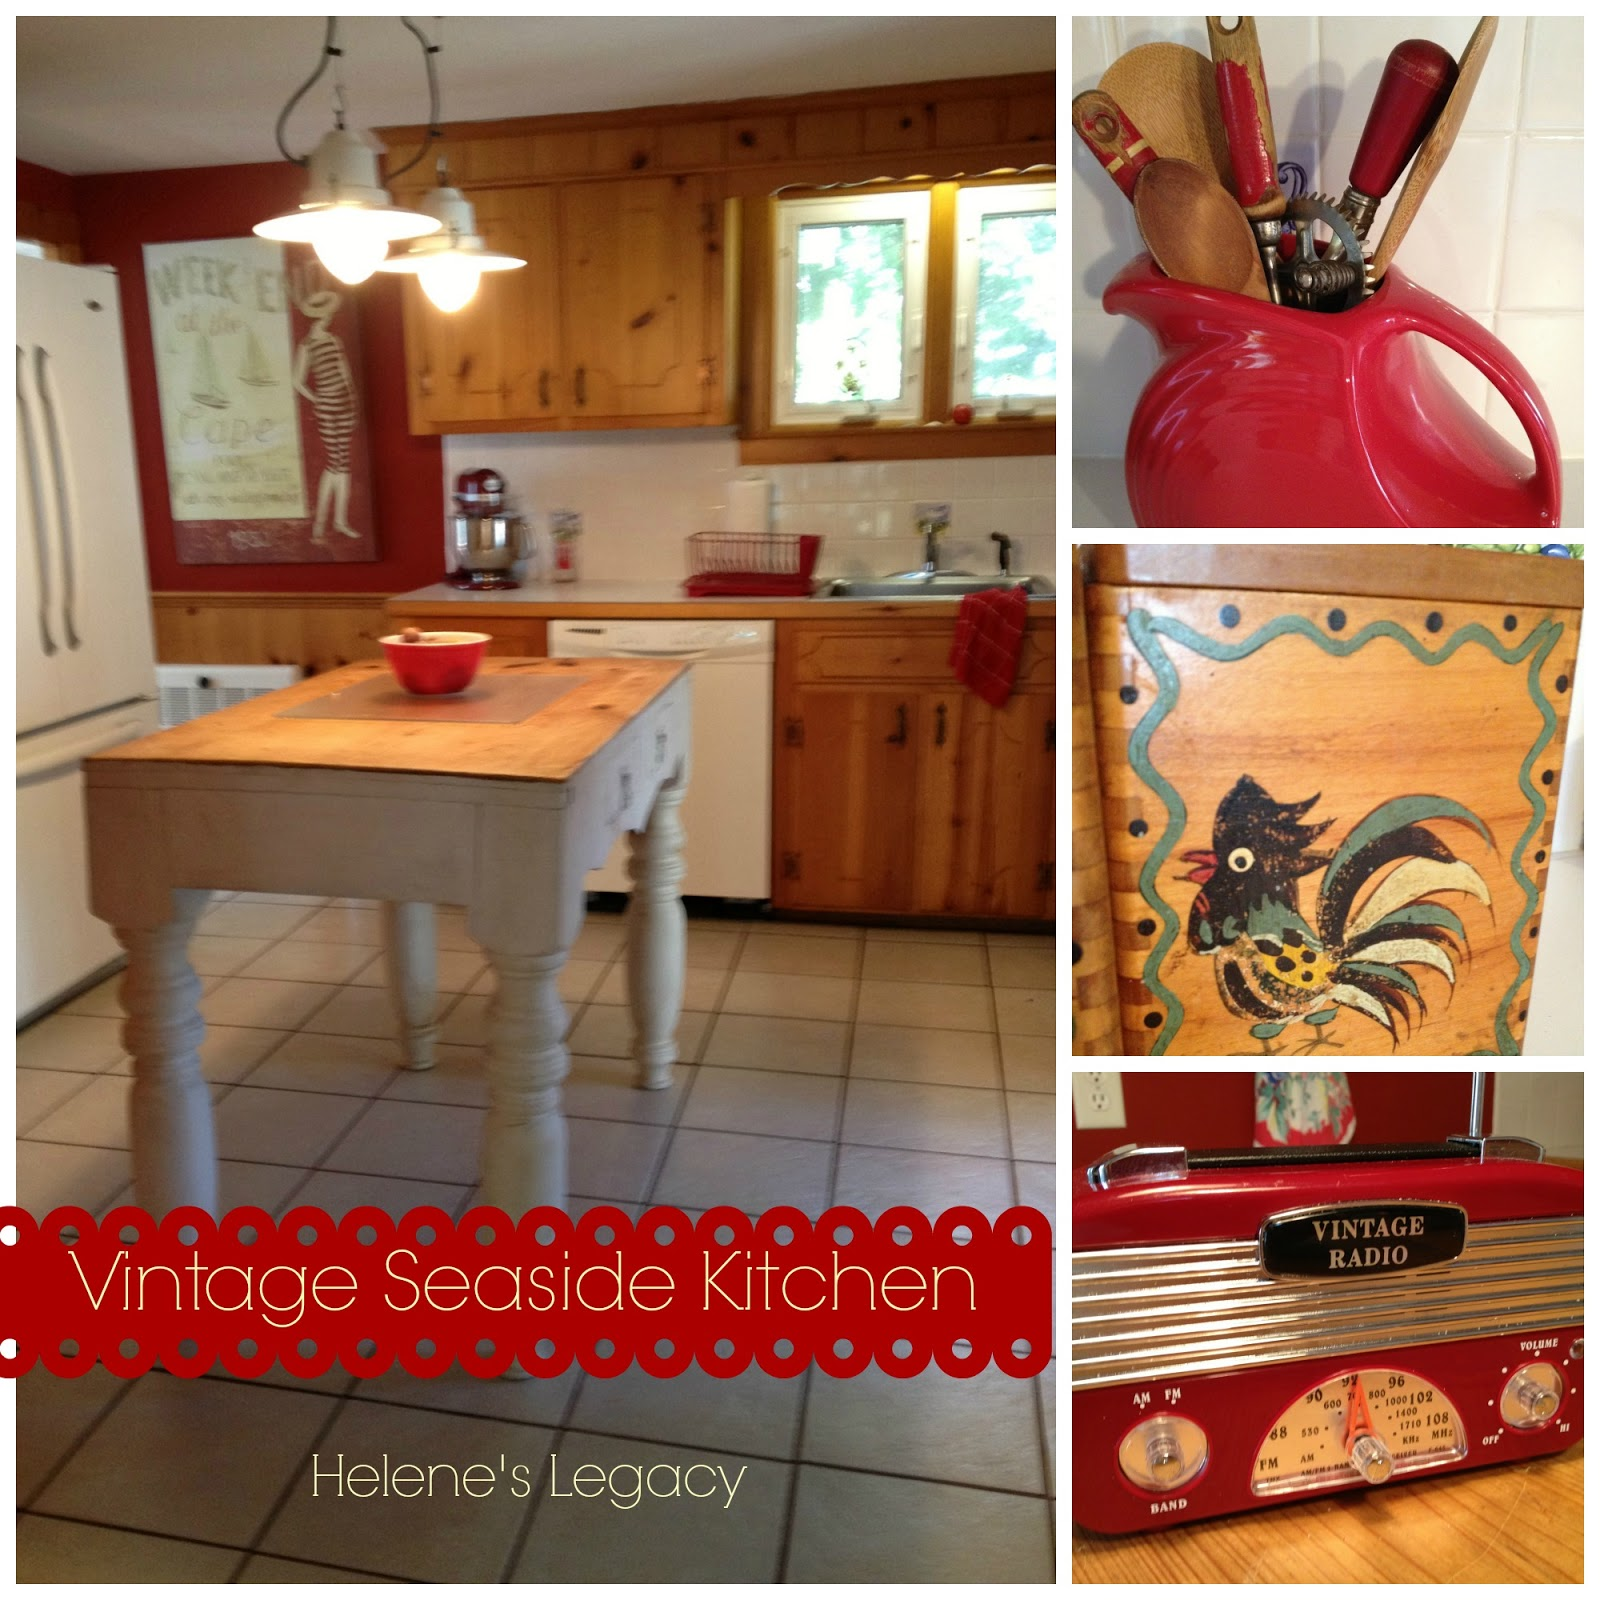 Vintage Seaside Kitchen